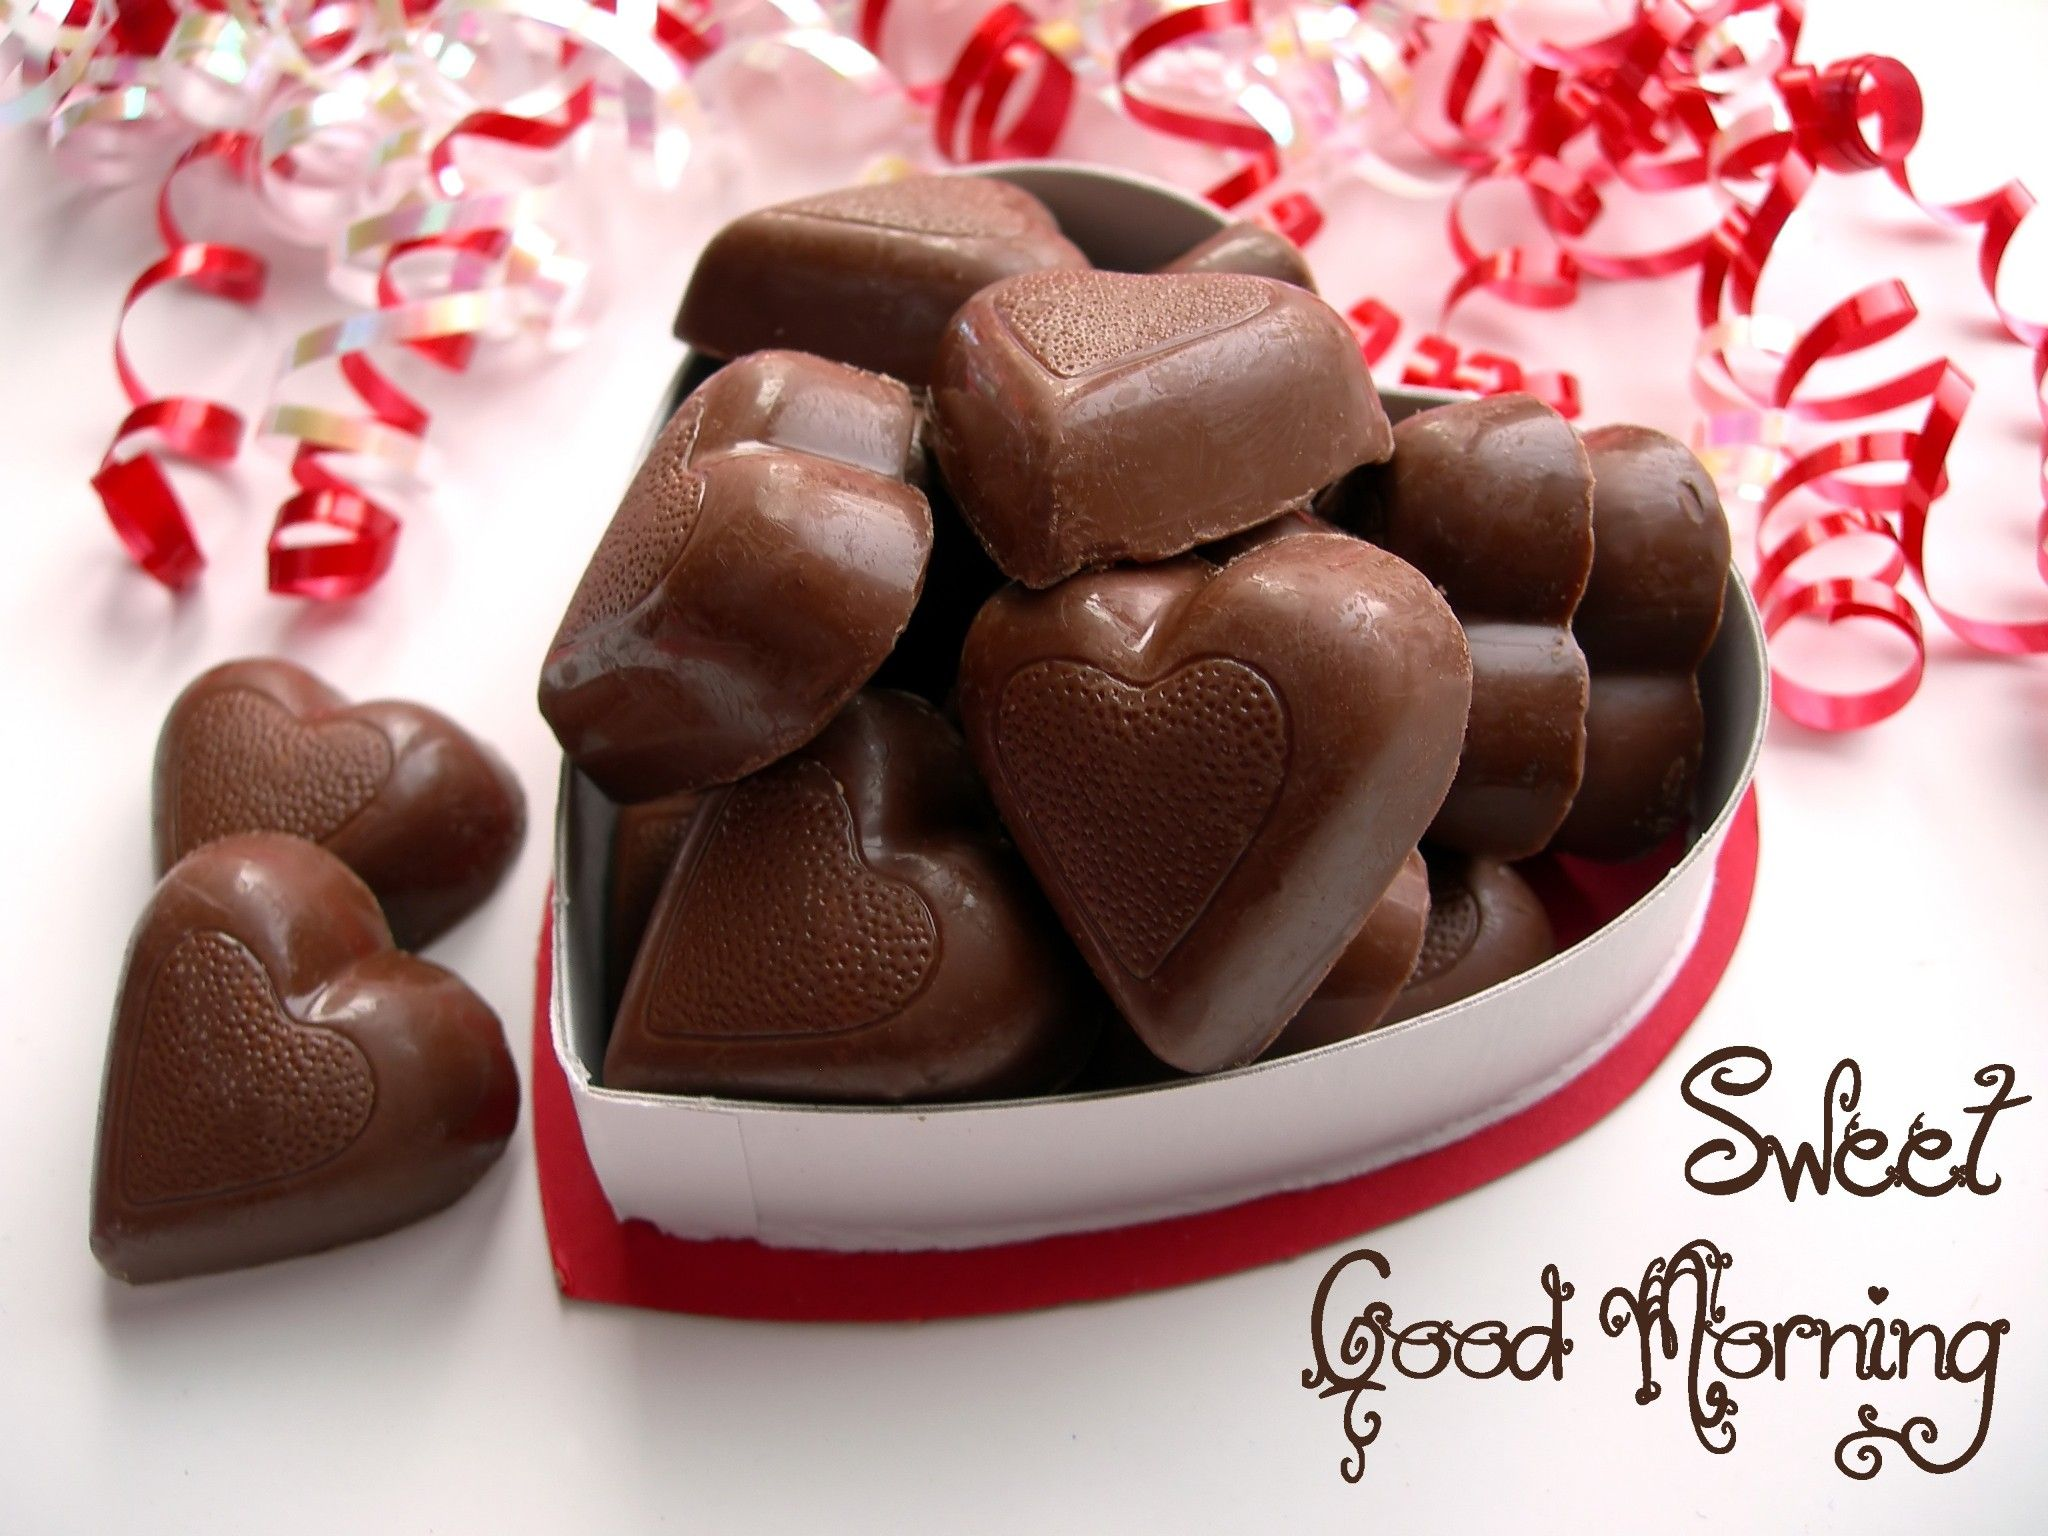 Sweet Good Morning Happy Chocolate Day Chocolate Day Chocolate Happy romantic chocolate day images for